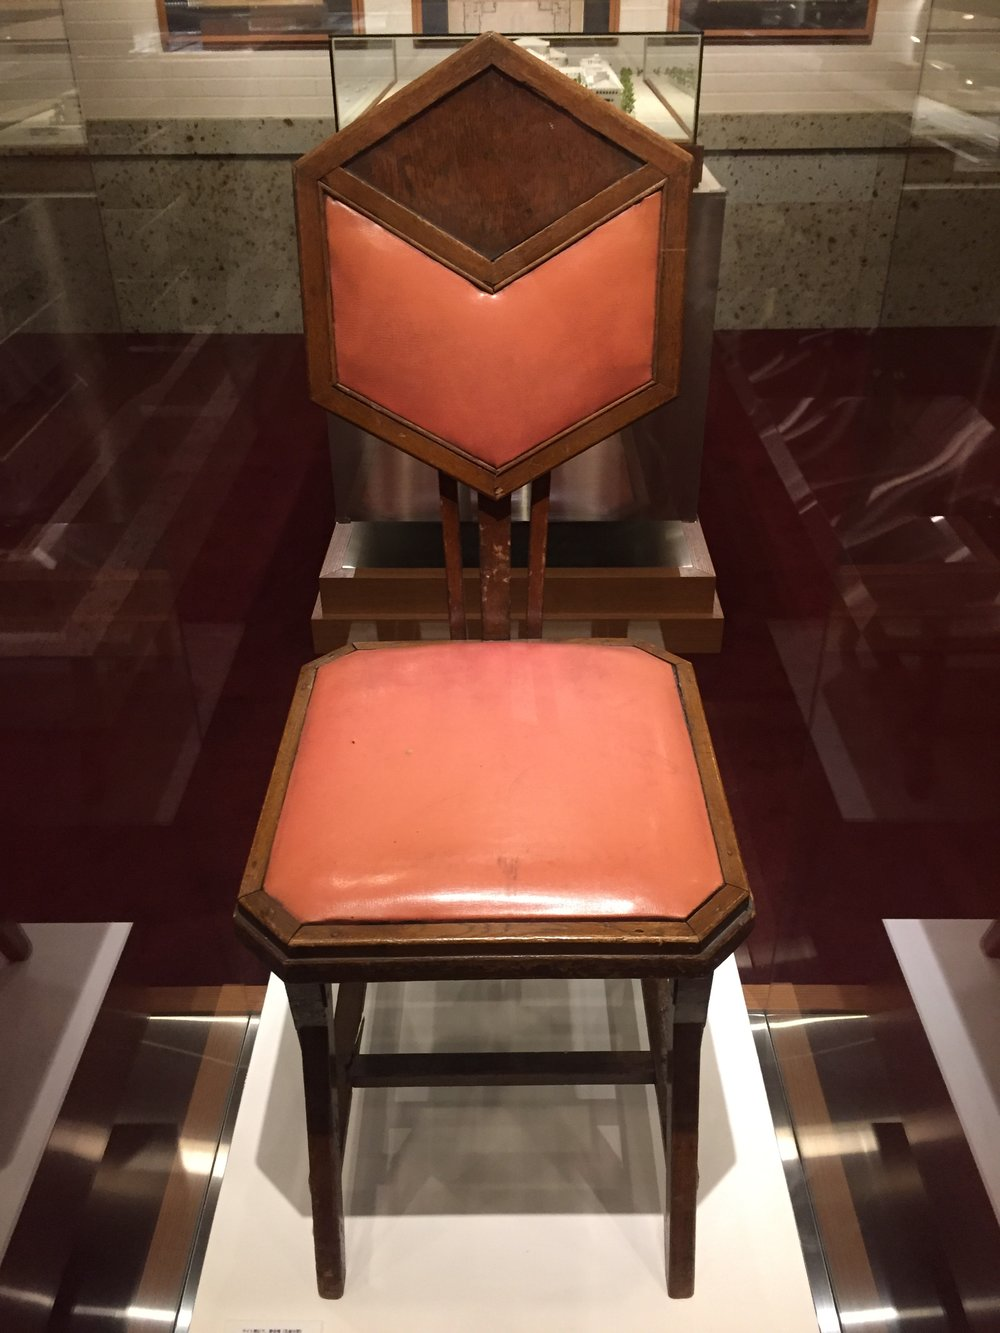 Imperial Hotel, chair designed by Frank Lloyd Wright)